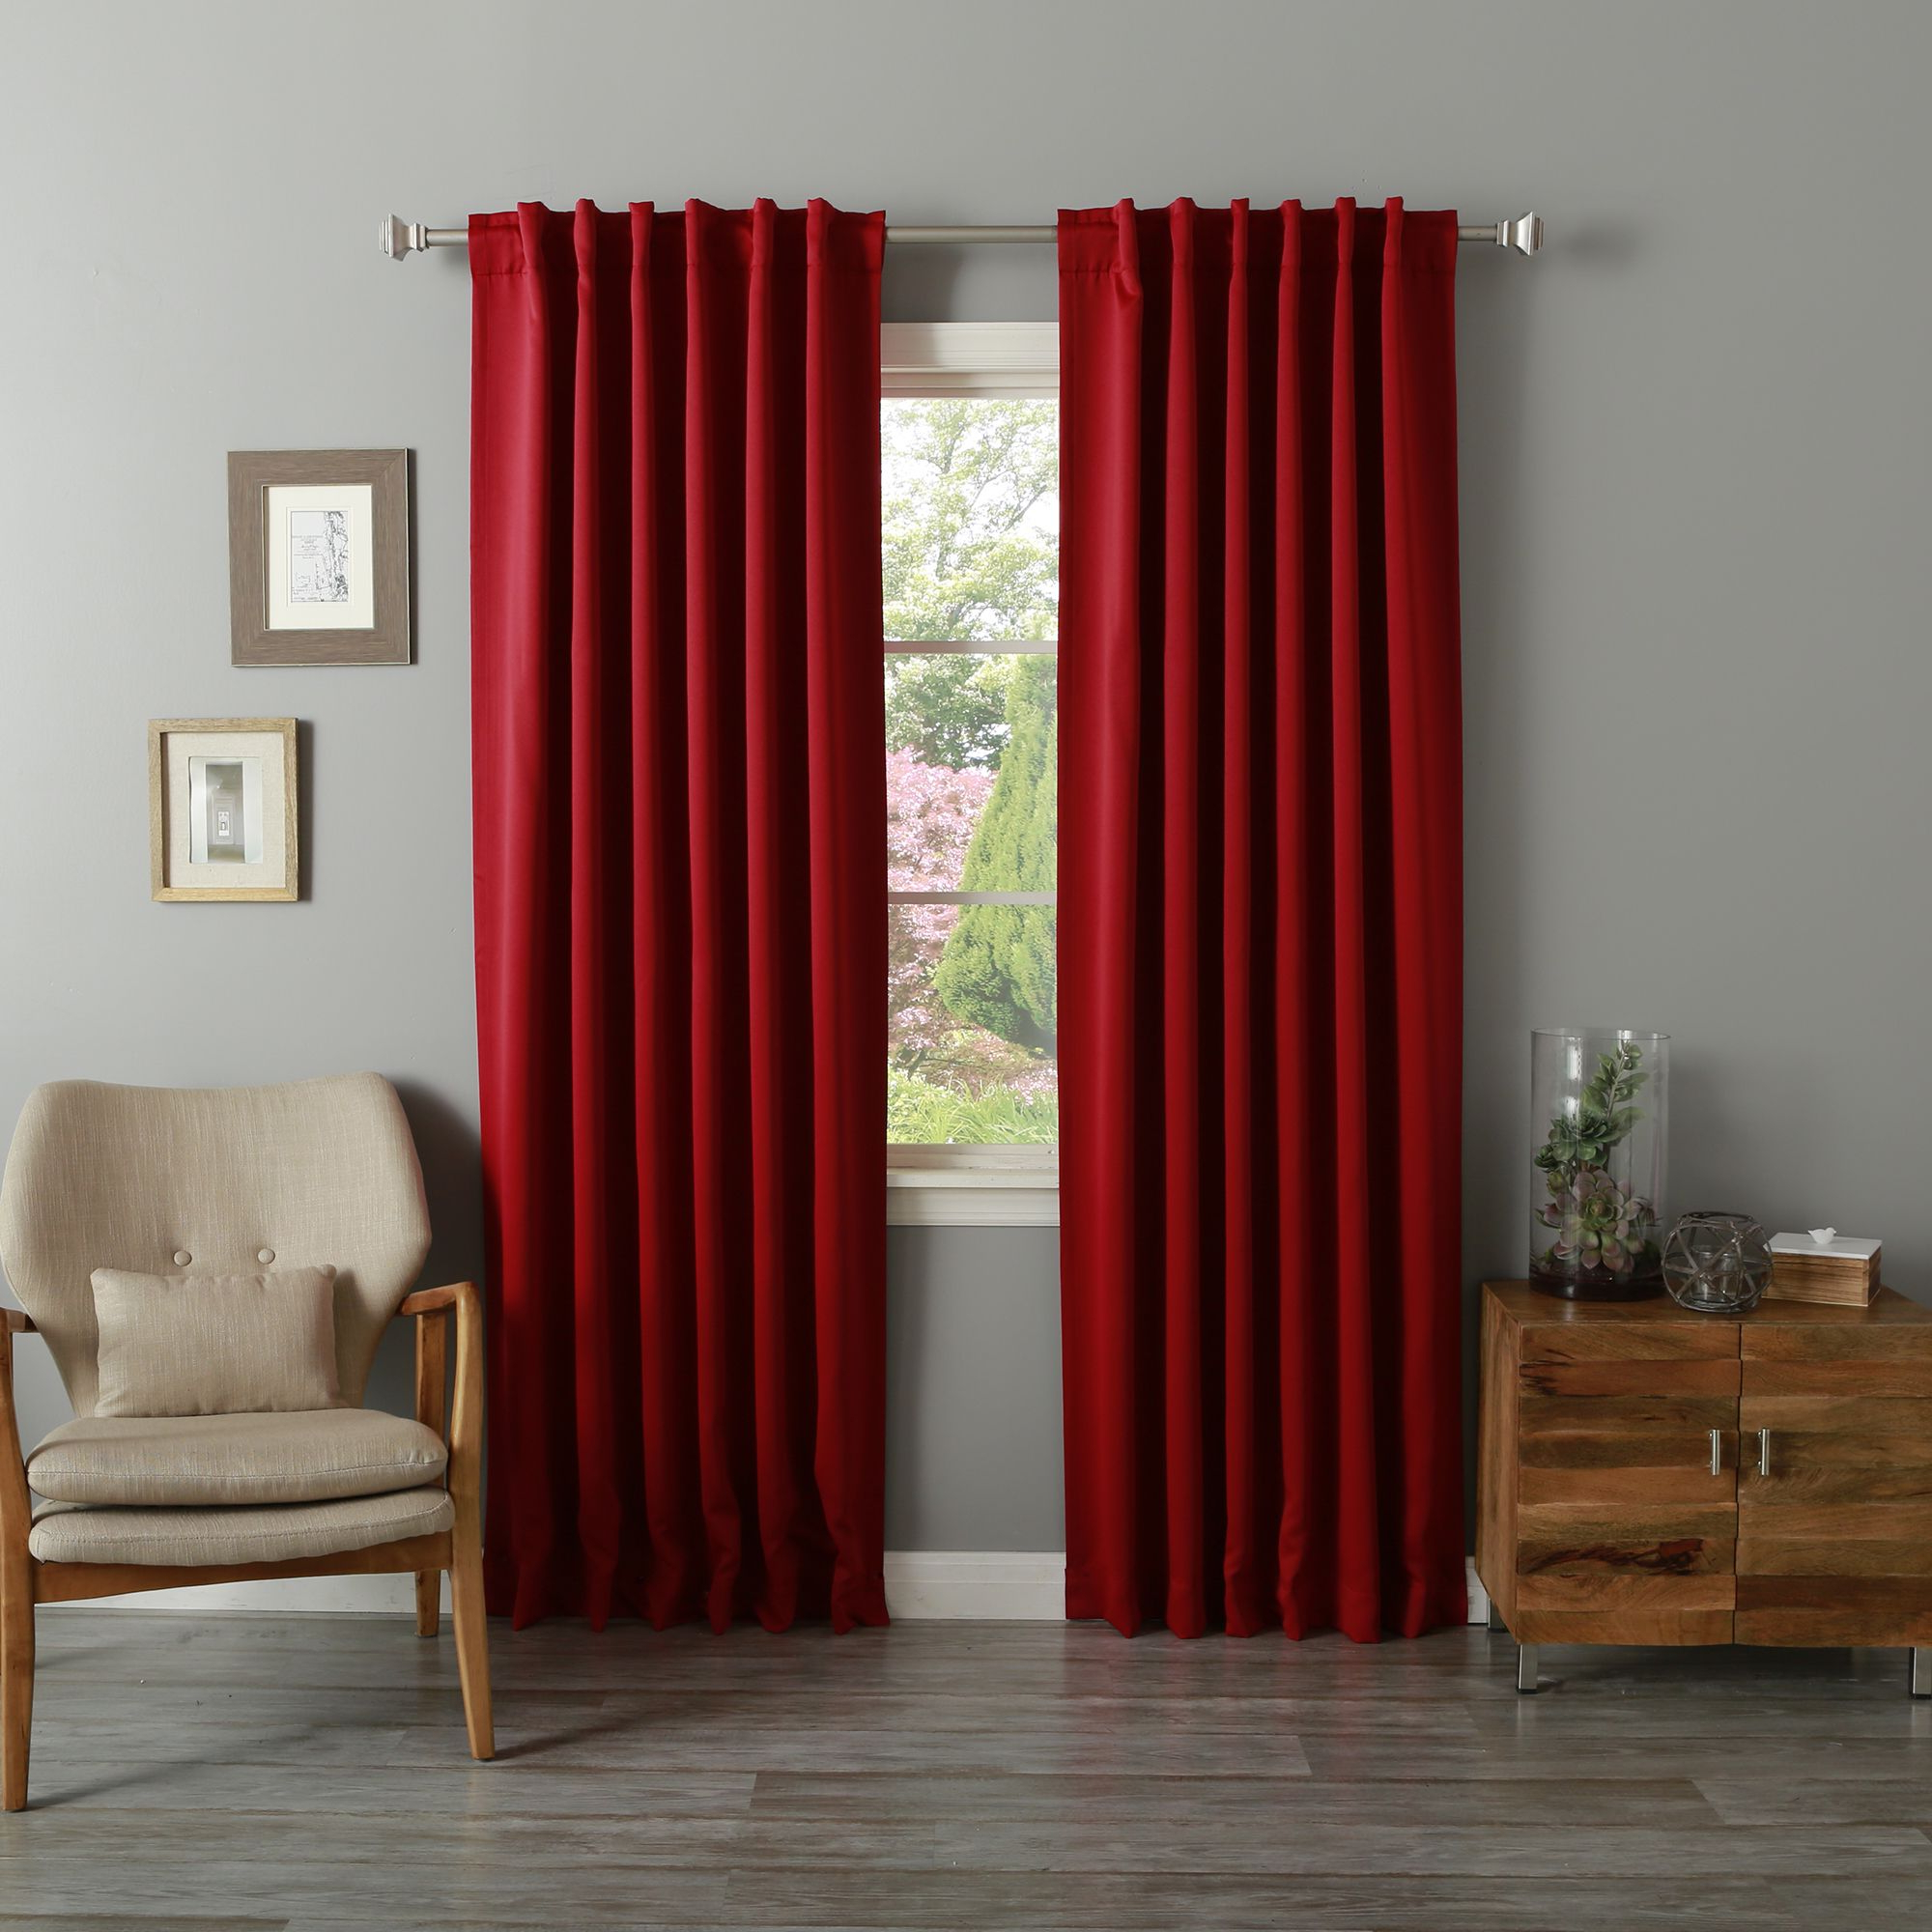 Thermal Rod Pocket Blackout Curtain Panel Pairs With Regard To Most Recently Released Aurora Home Thermal Rod Pocket 96 Inch Blackout Curtain (View 15 of 20)